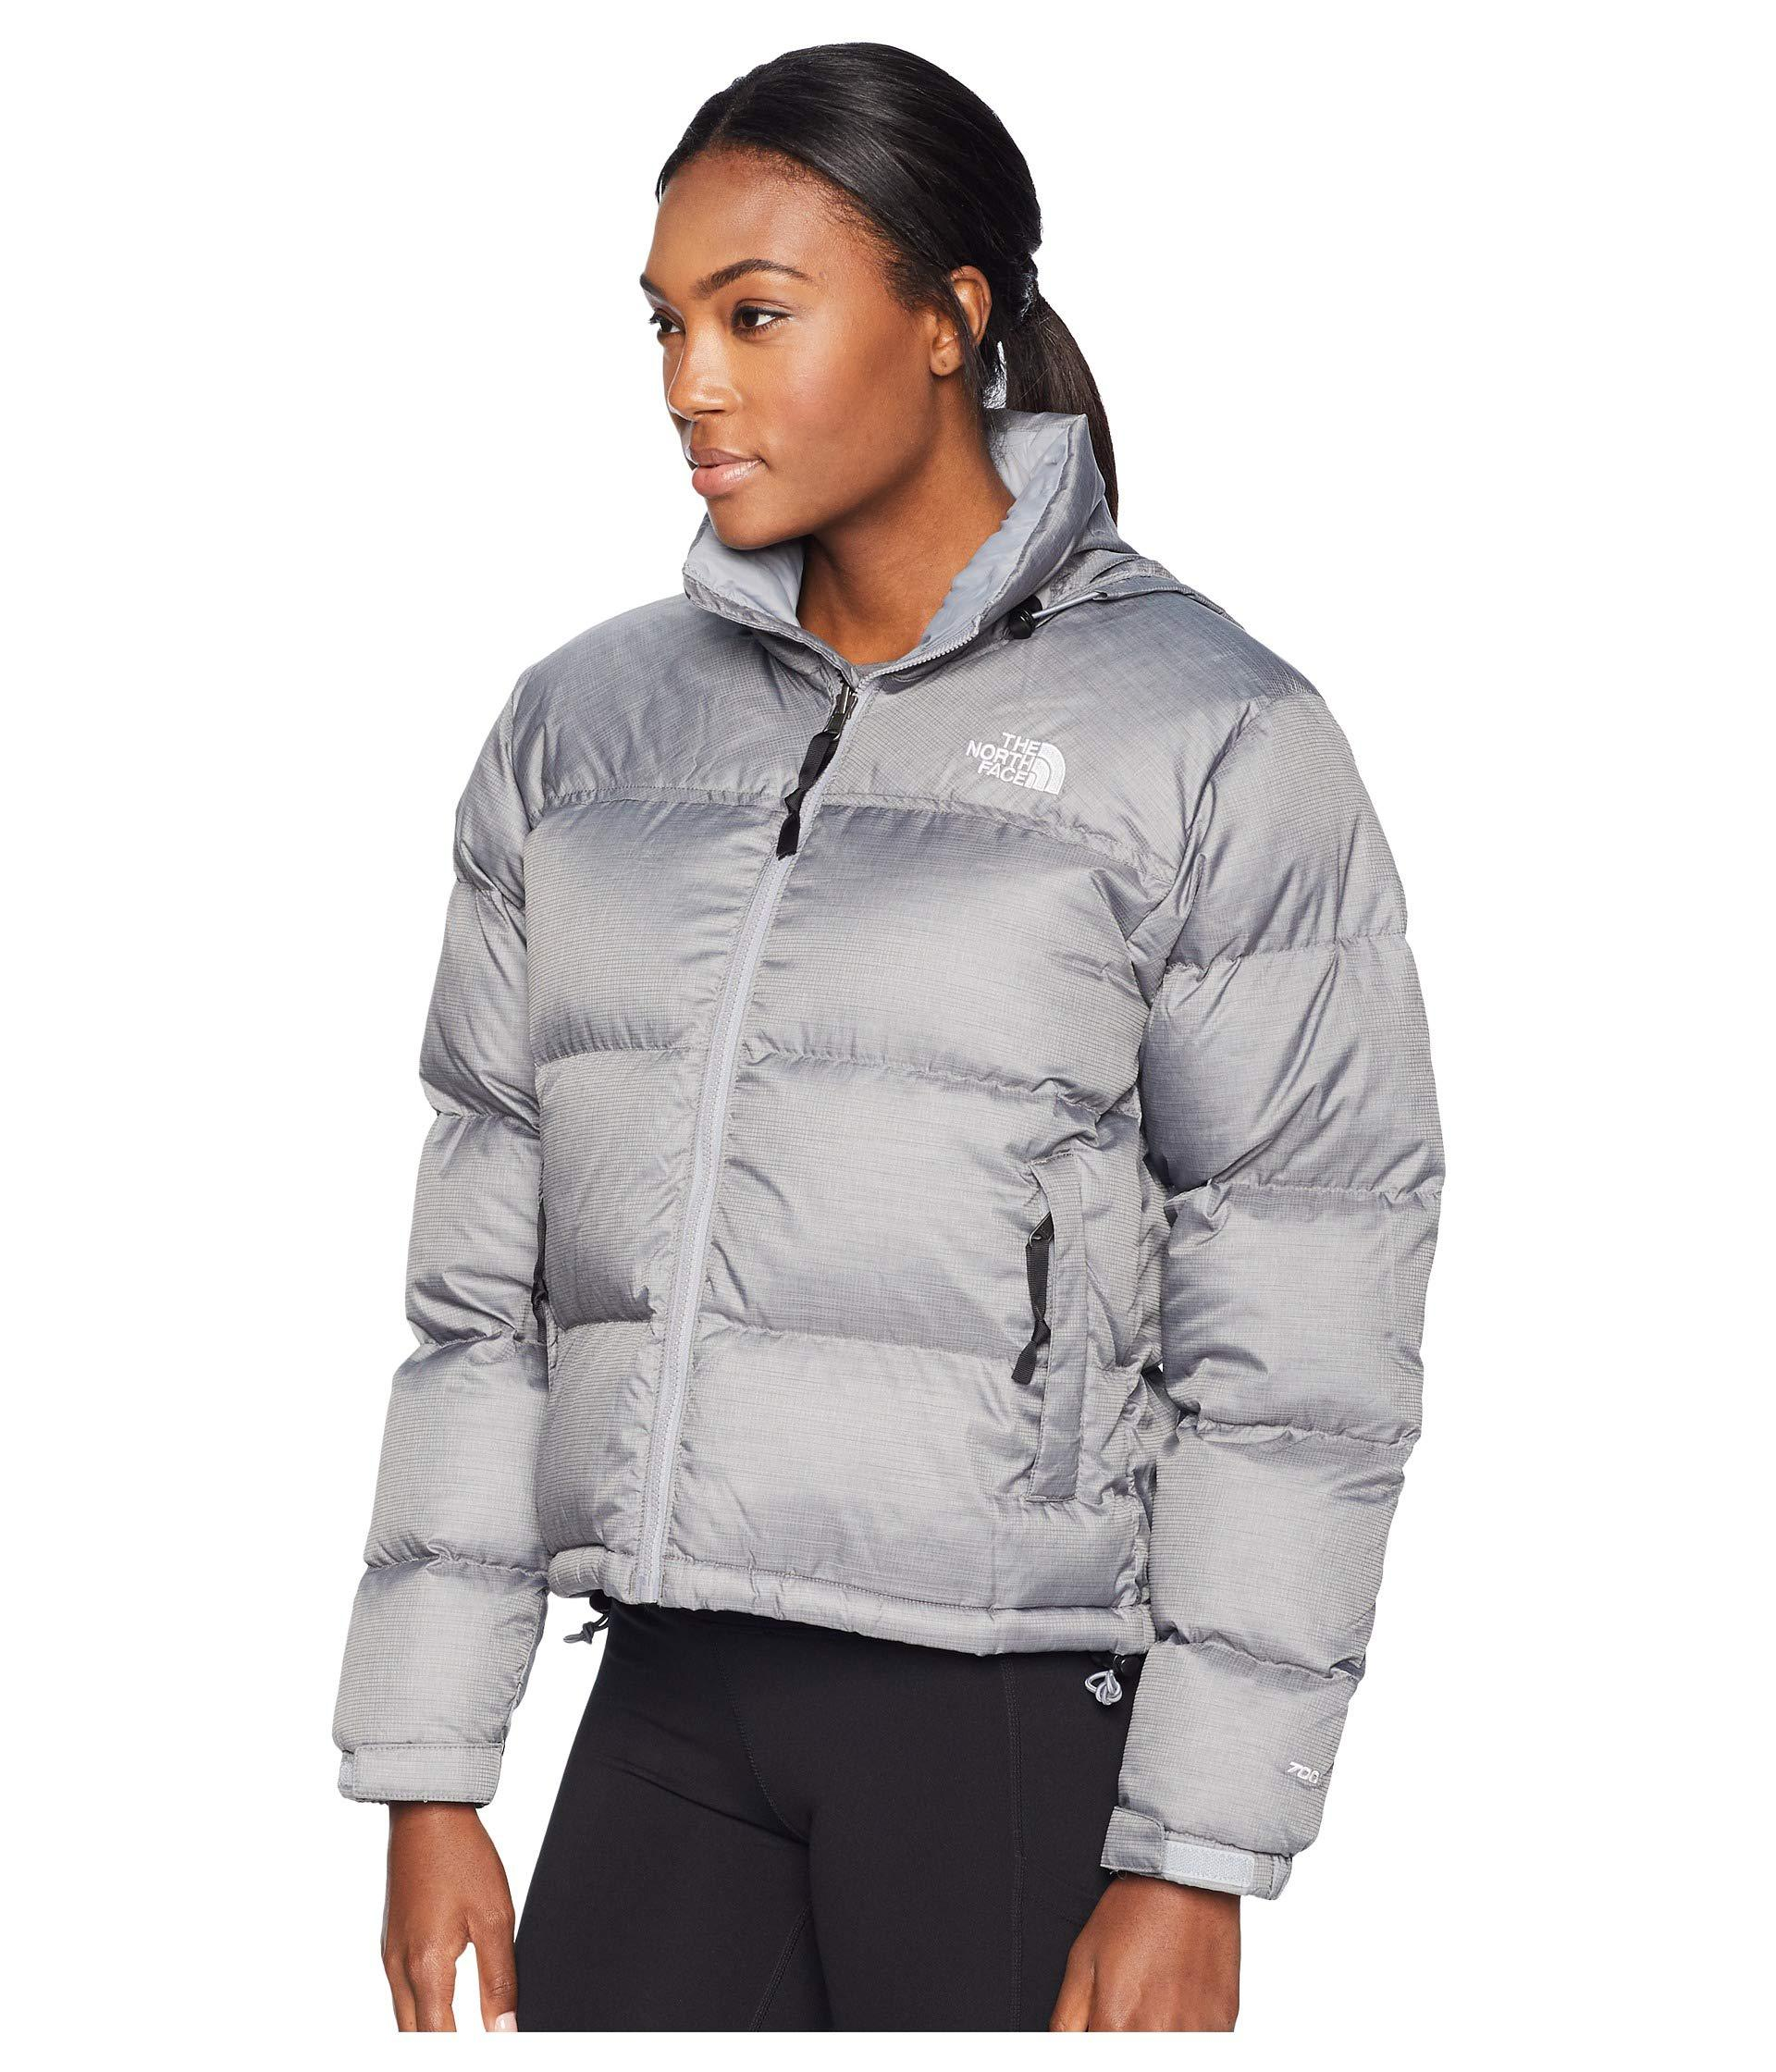 Lyst - The North Face 1996 Retro Nuptse Jacket (tnf White) Women s Coat in  Gray 23560af0f